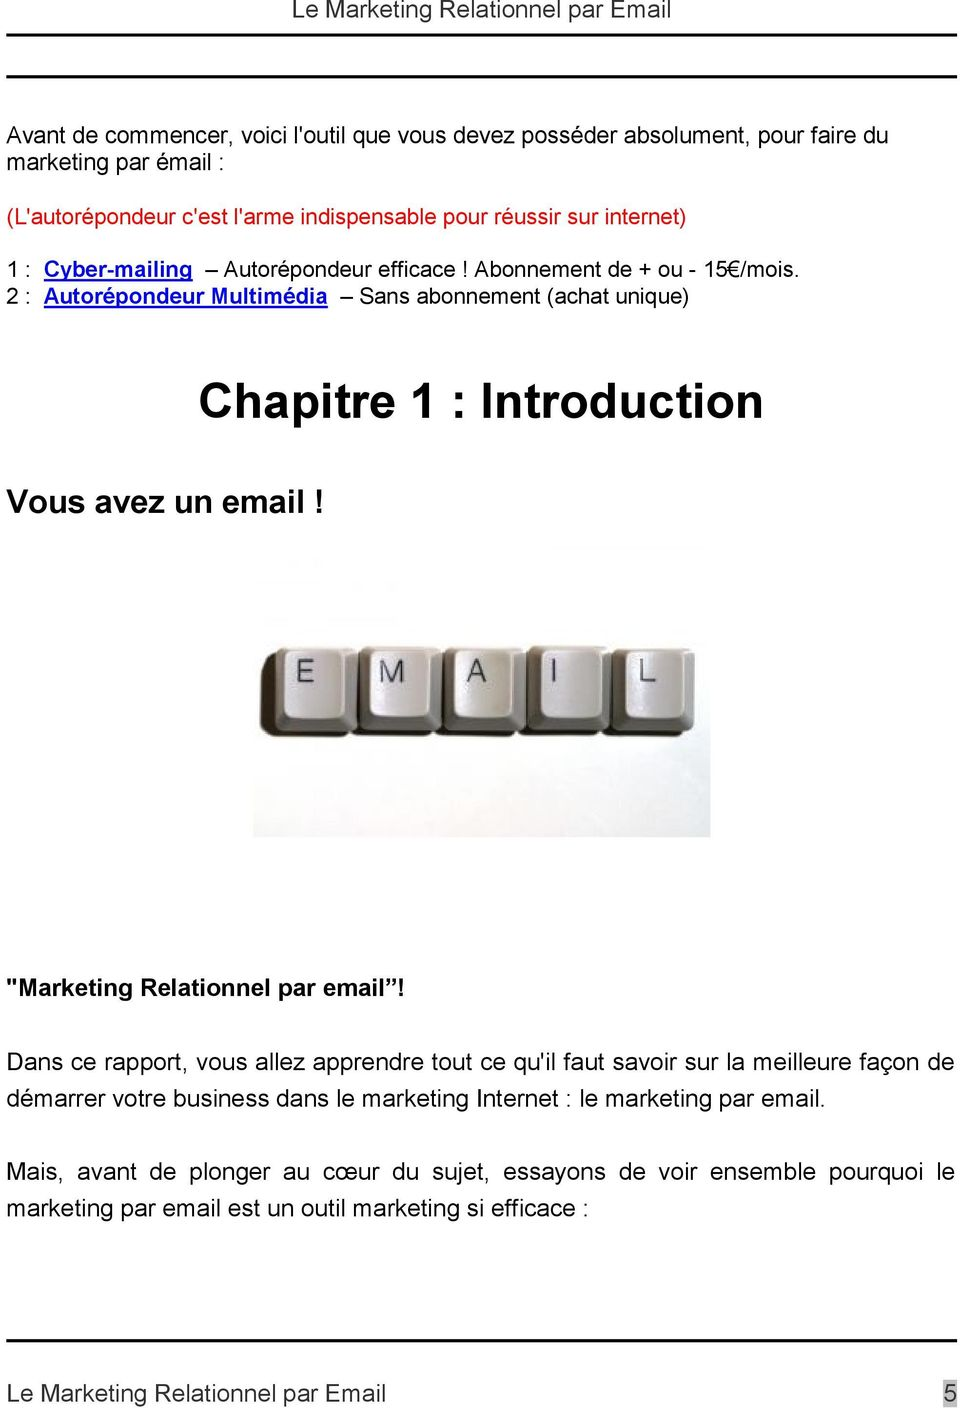 """Marketing Relationnel par email!"